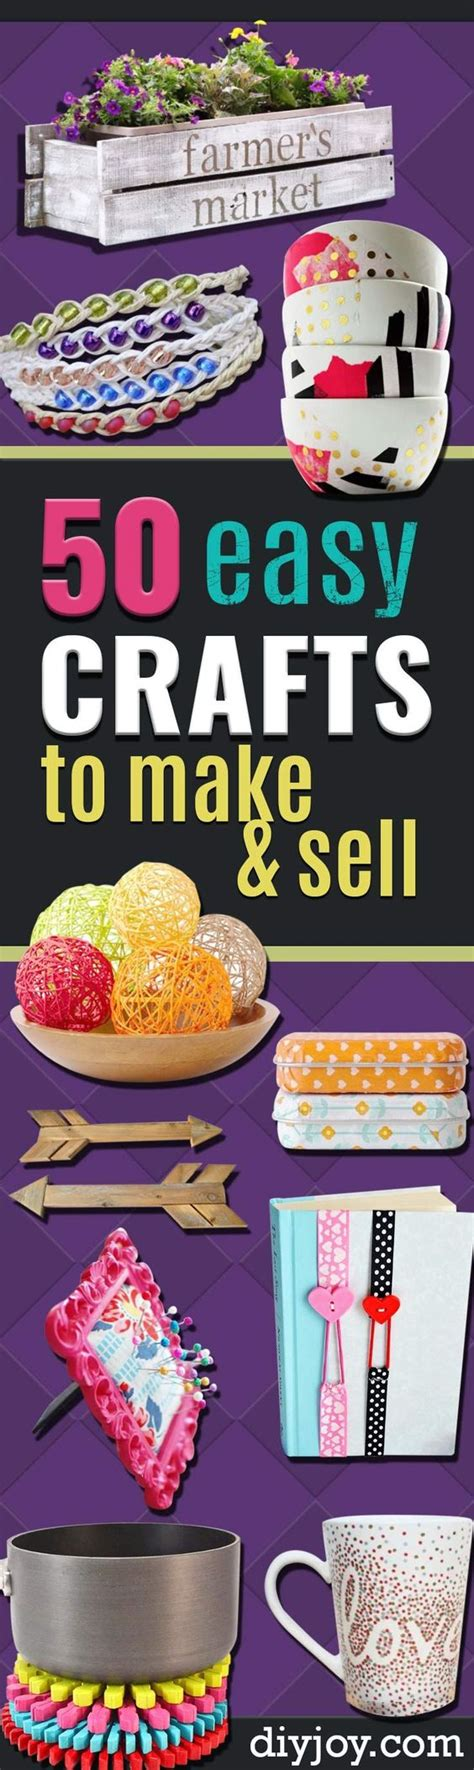 easy crafts to make and sell 50 easy crafts to make and sell craft fairs 7694